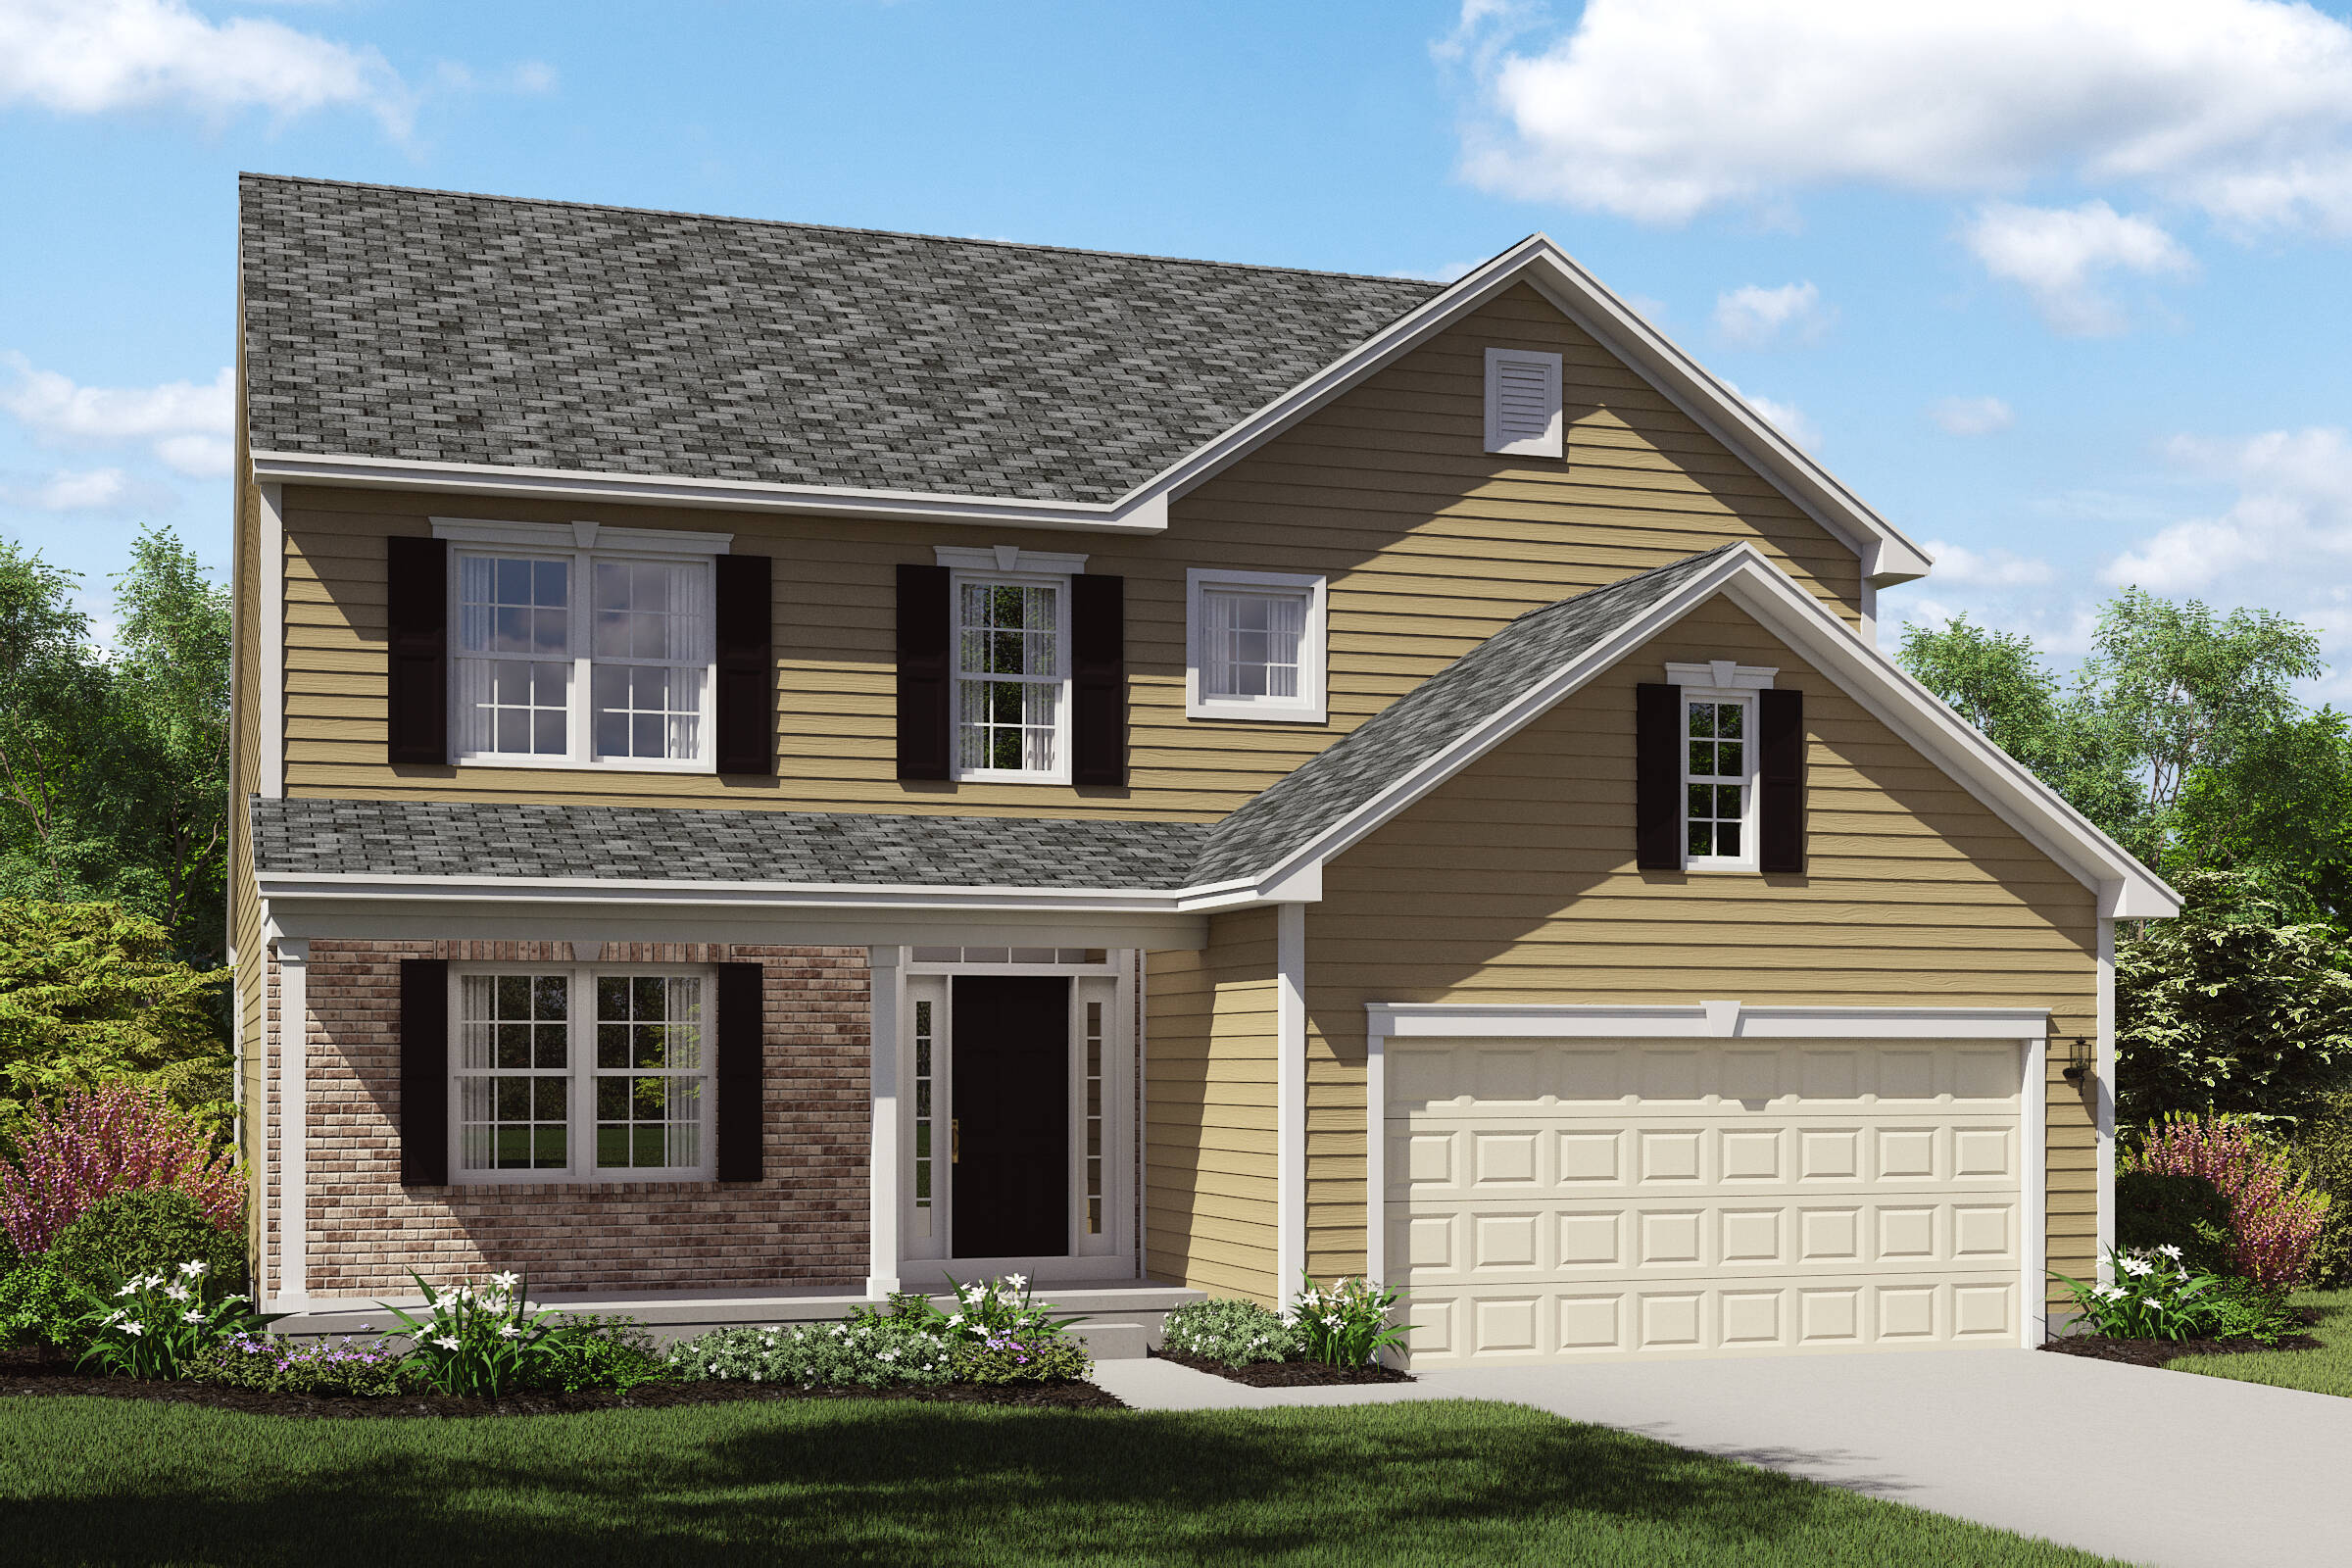 new homes with brick exterior oakridge C northeast ohio